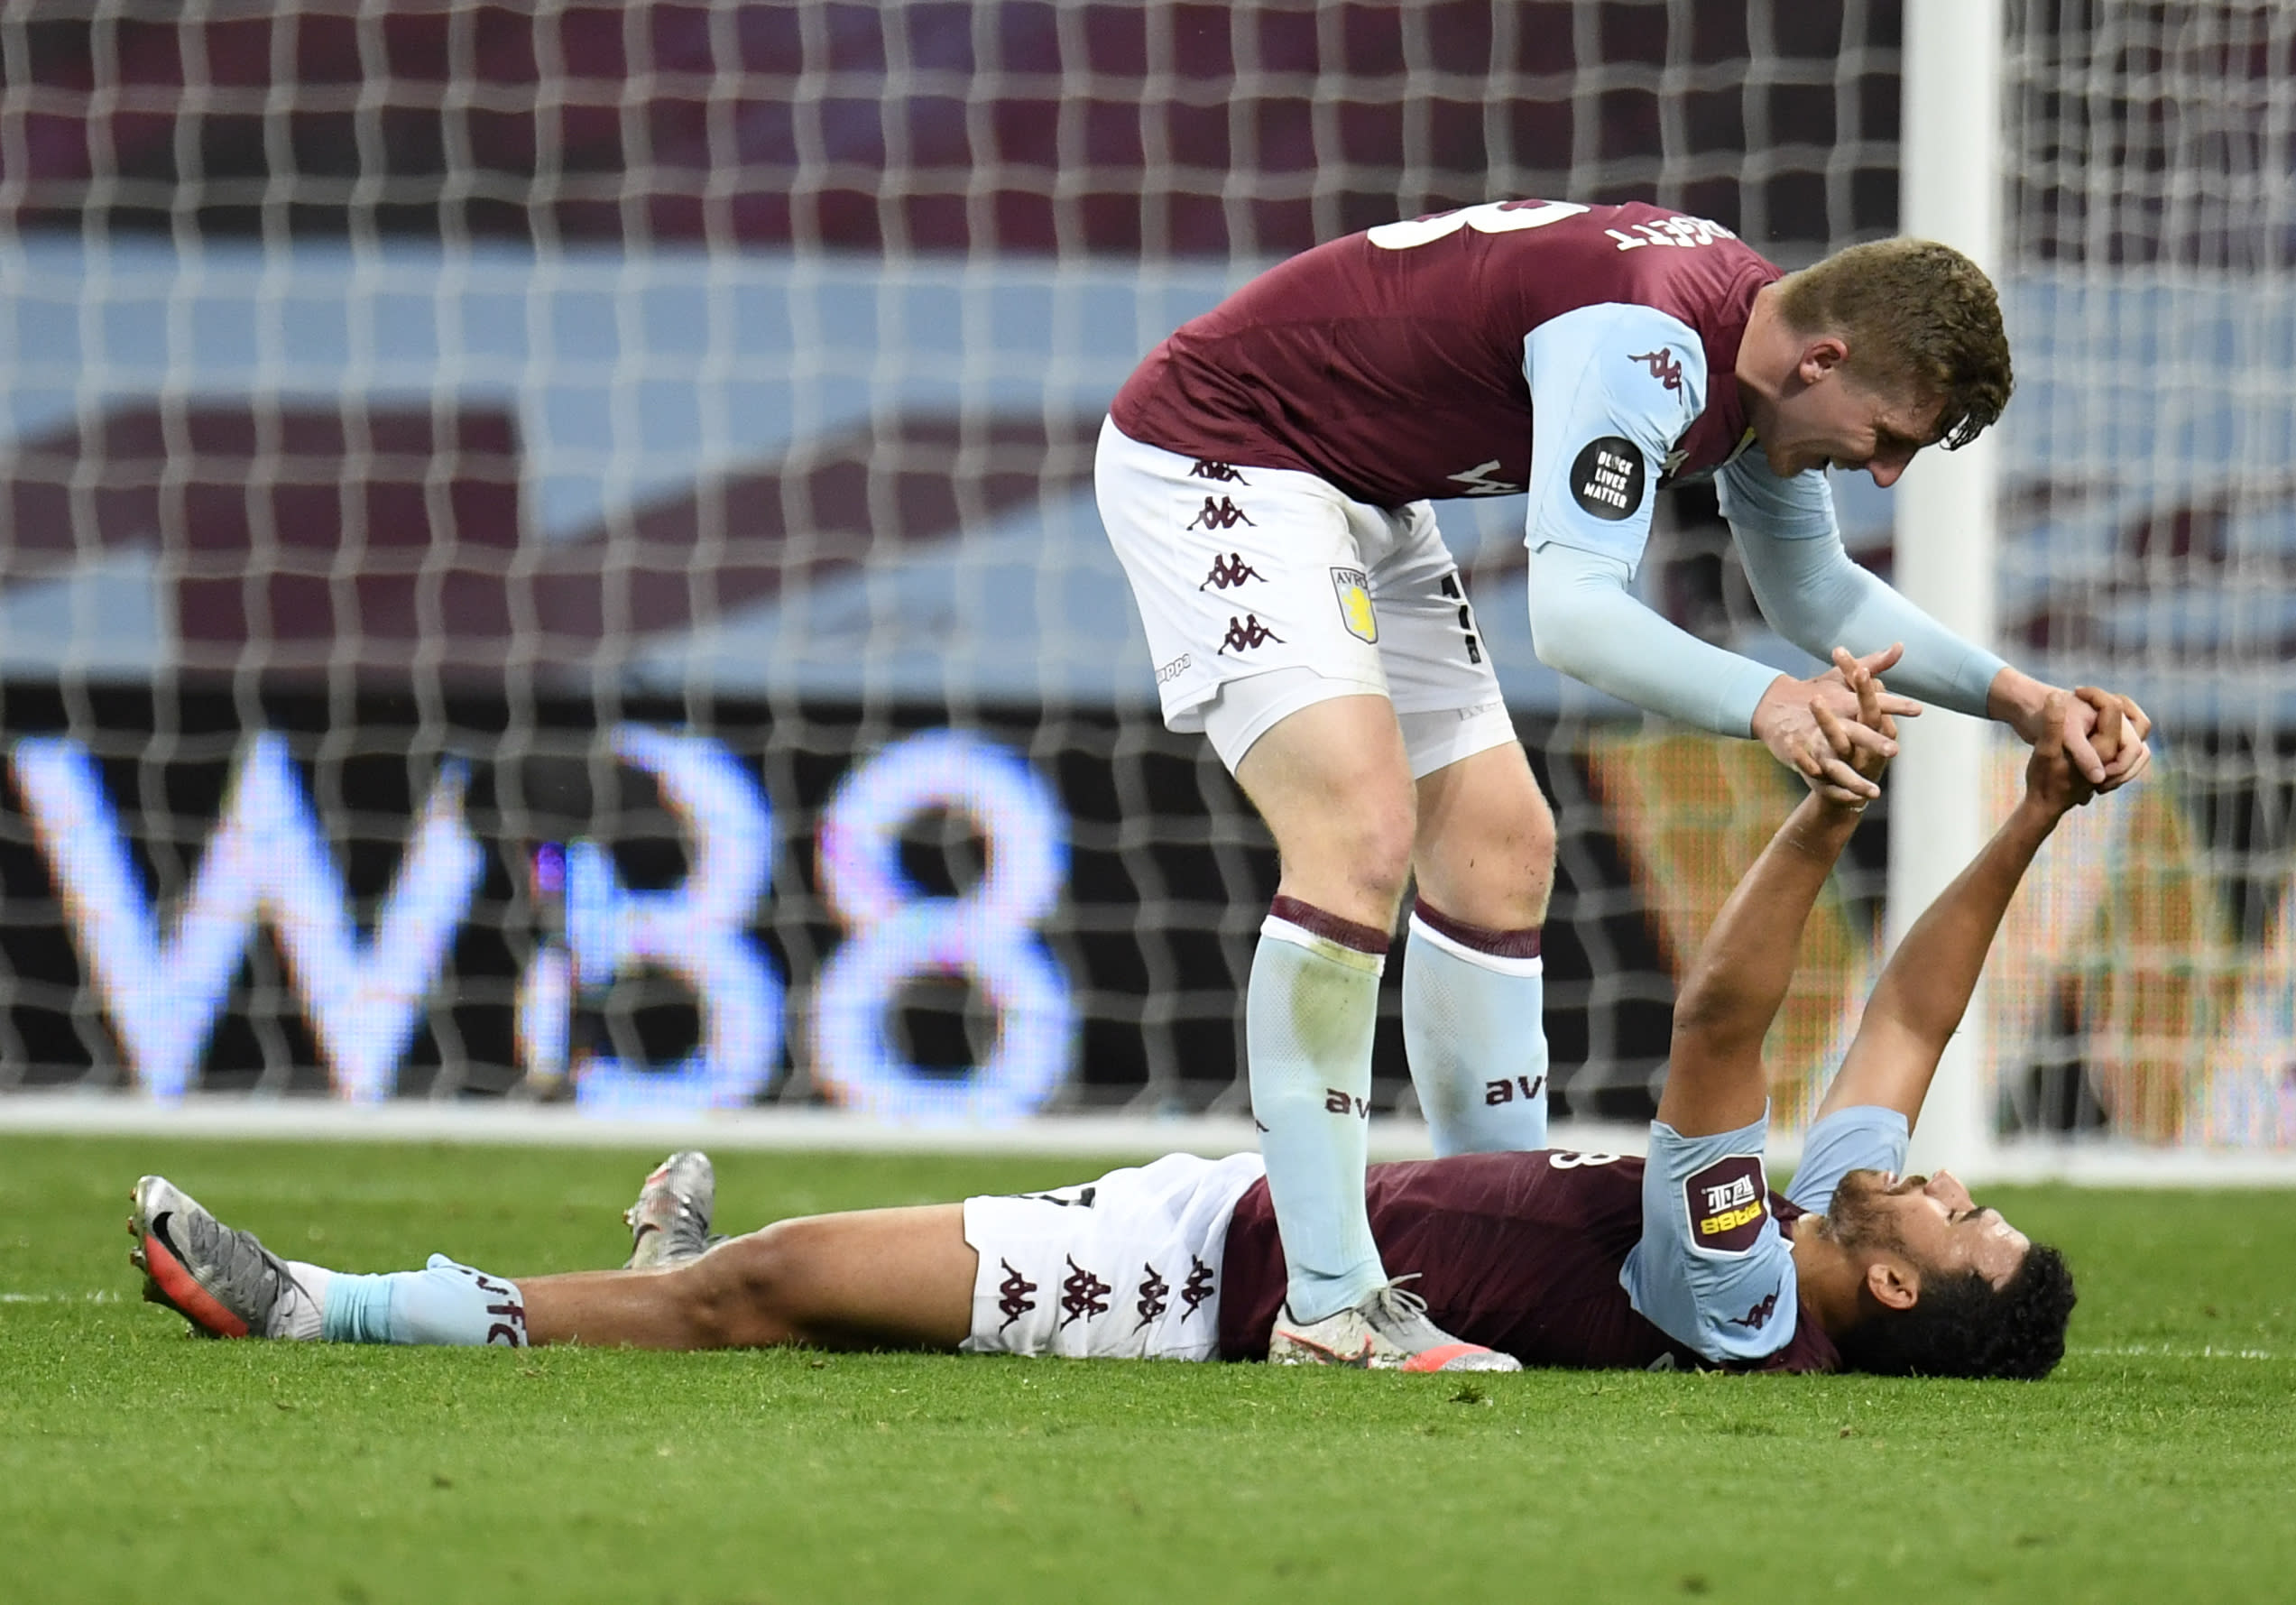 Aston Villa's Matt Targett, top, celebrates with teammate Trezeguet after the English Premier League soccer match between Aston Villa and Arsenal at Villa Park in Birmingham, England, Tuesday, July 21, 2020. (AP Photo/Peter Powell,Pool)